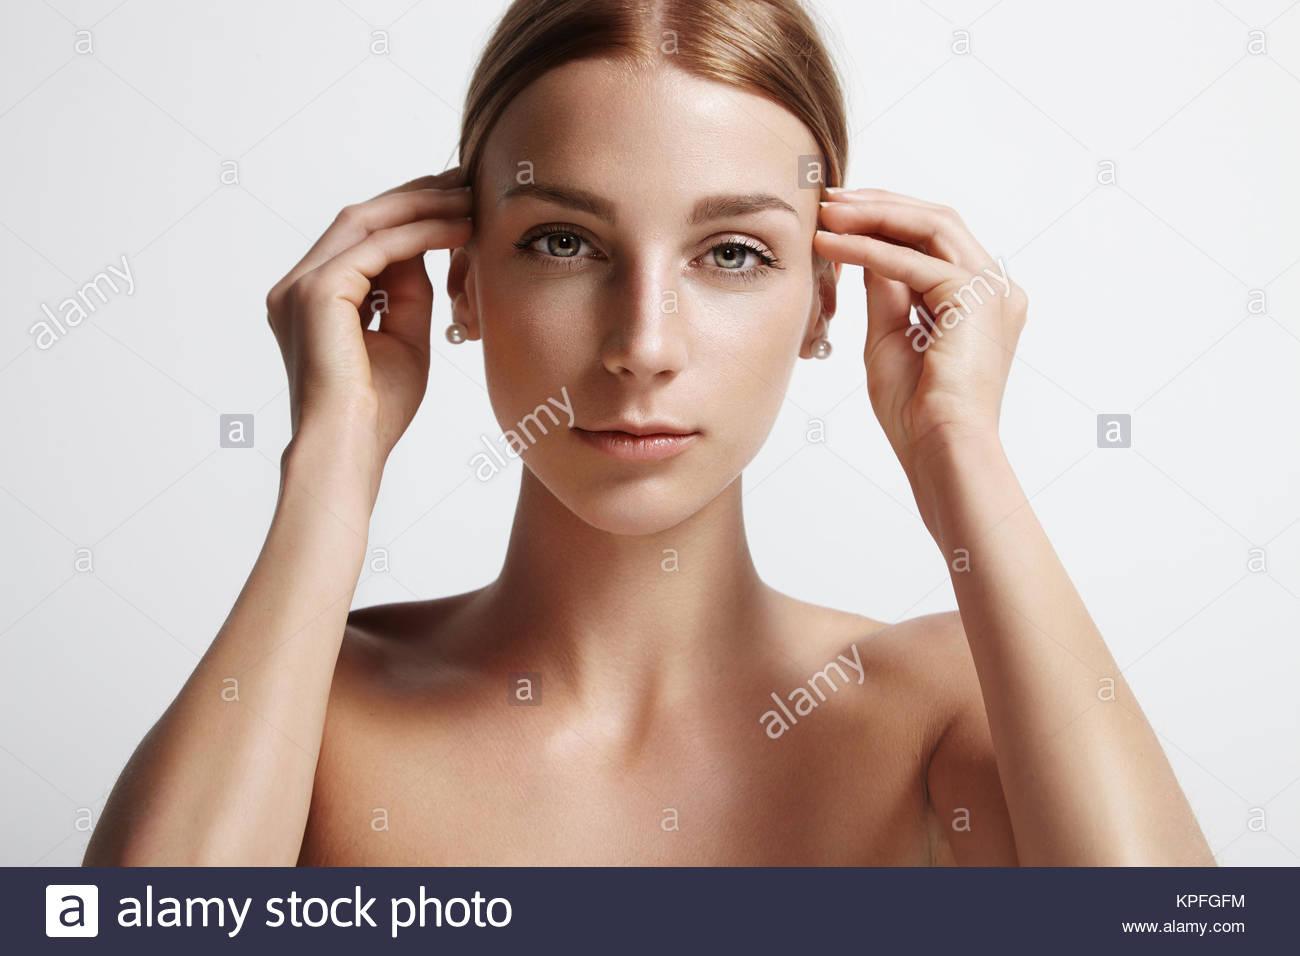 woman touching her hair - Stock Image